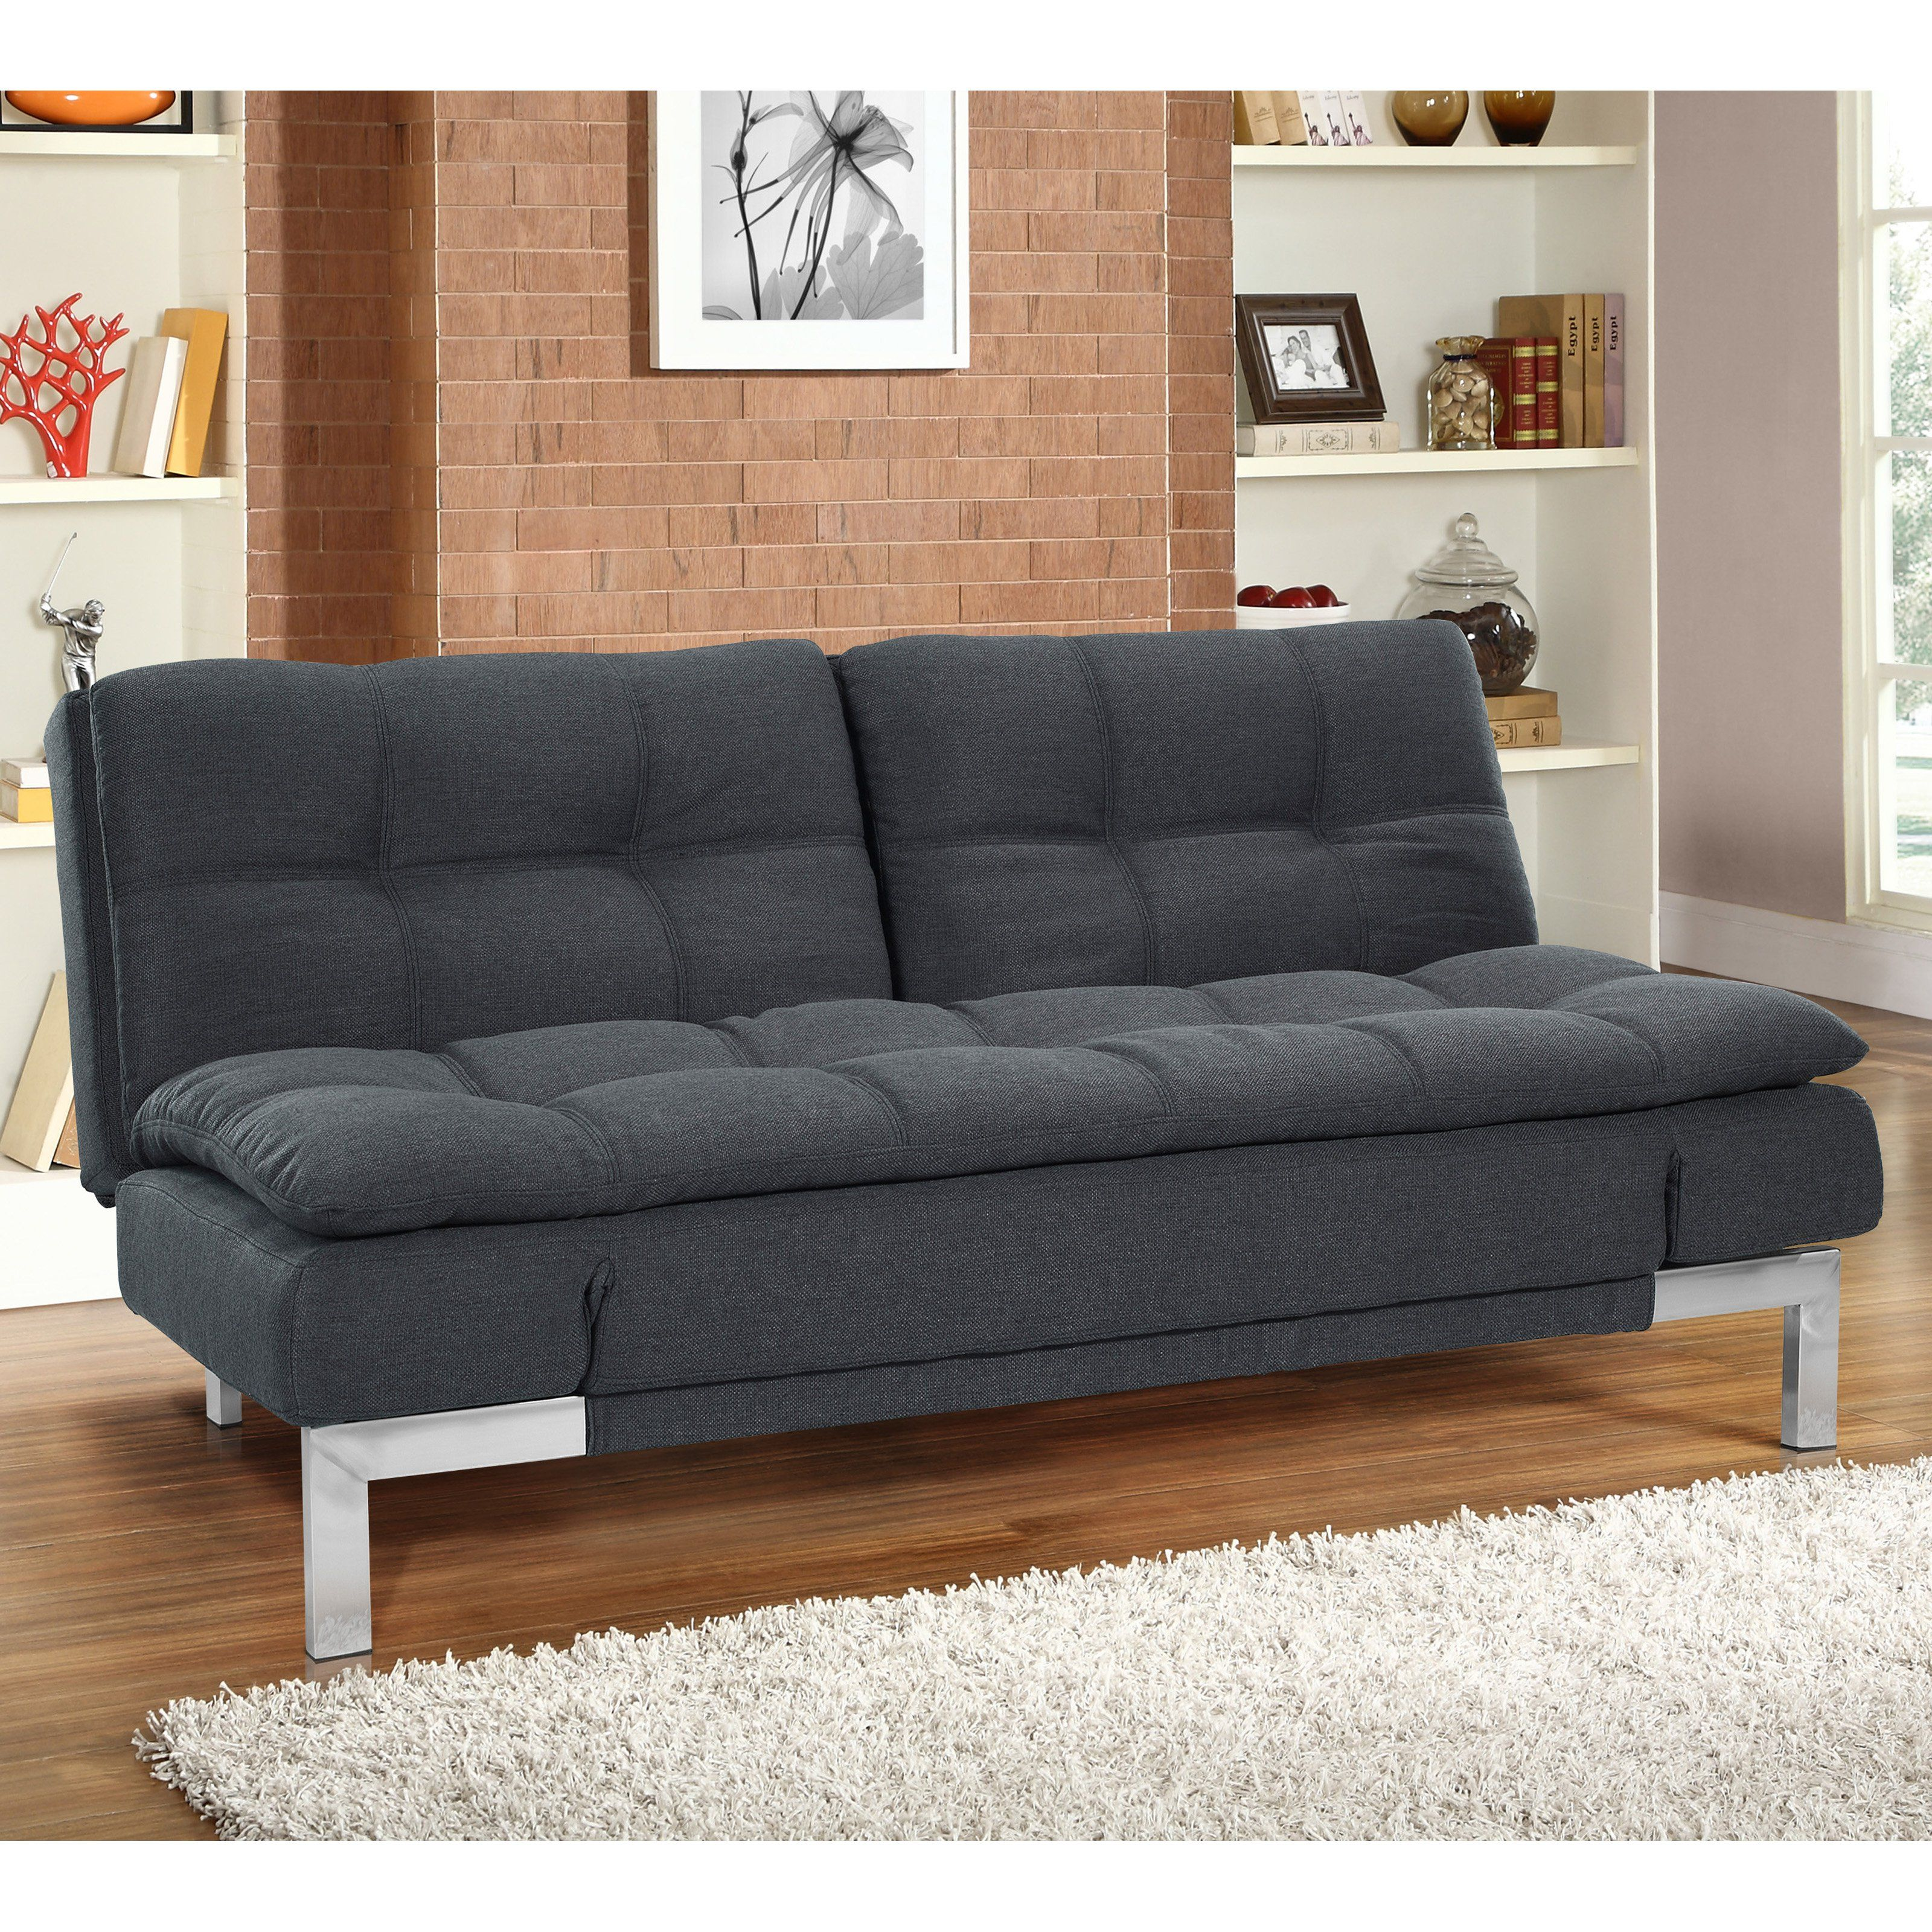 Have To Have It Serta Dream Convertible Boca Sofa Charcoal